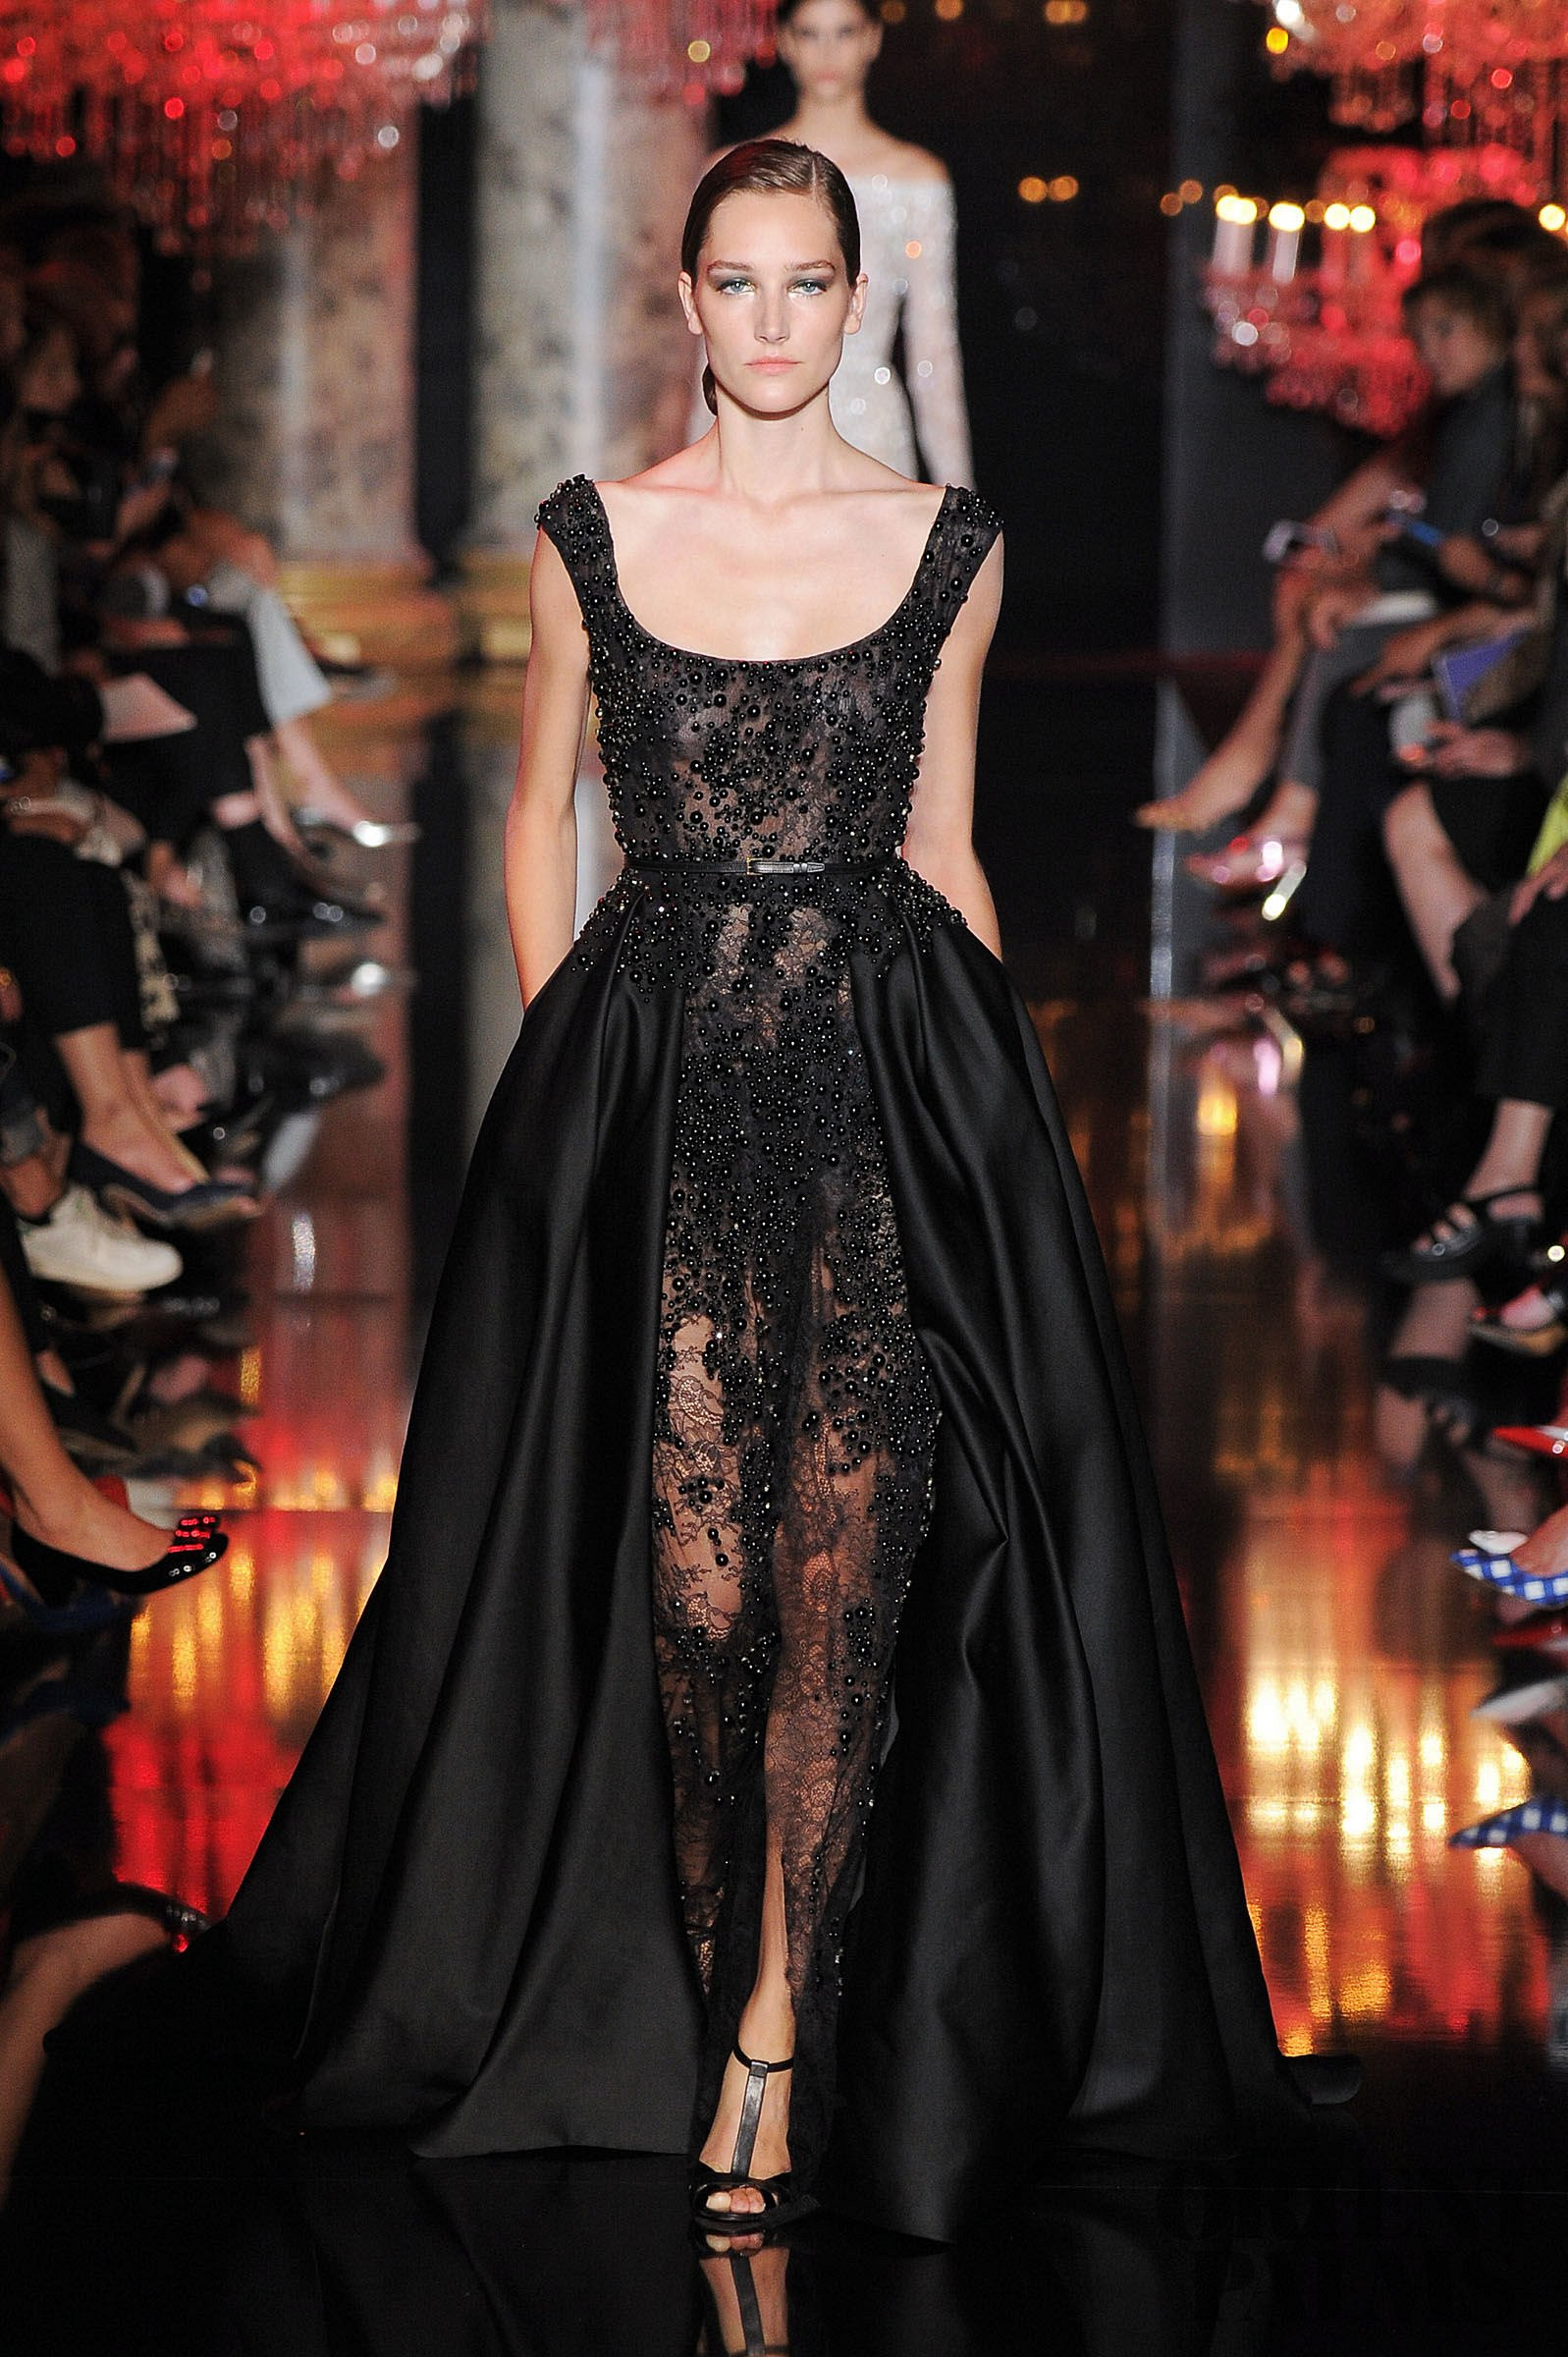 Fall-Winter 2014-2015 fashion by Elie Saab and Valentino